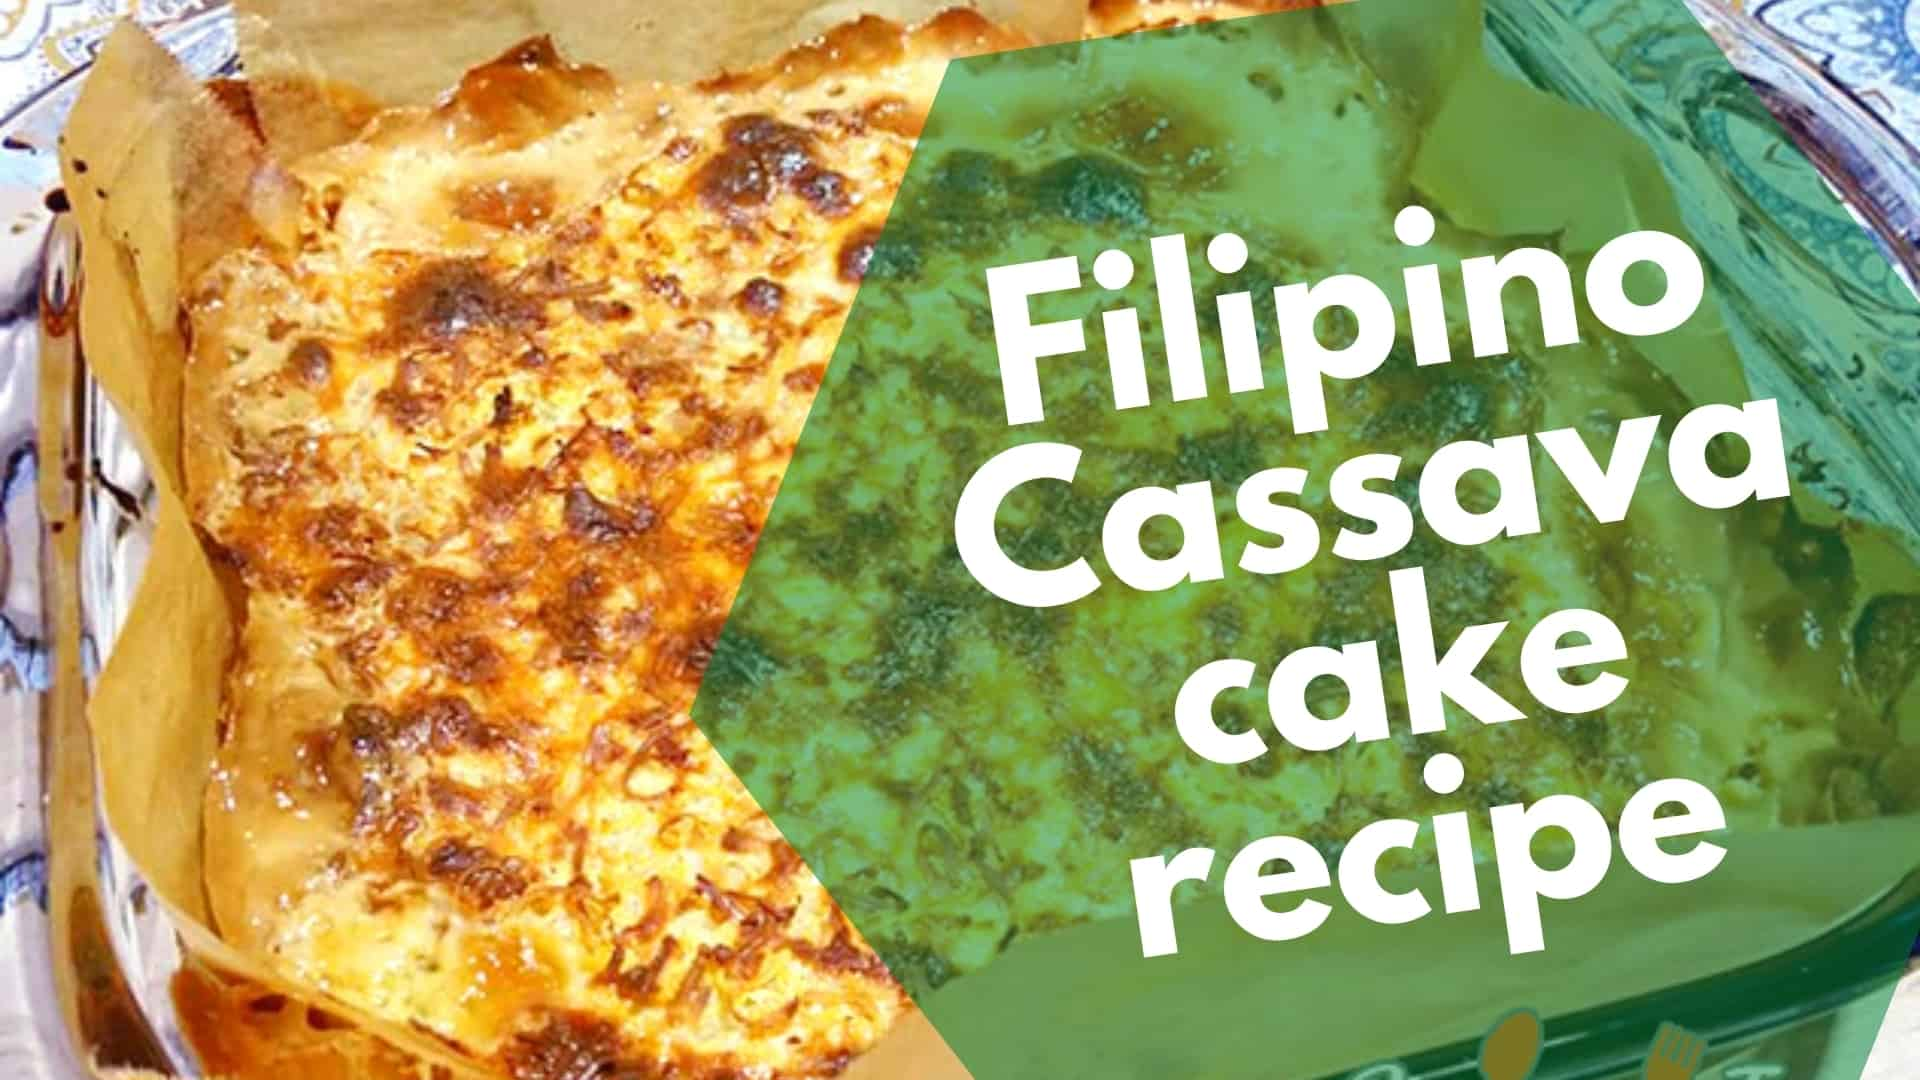 Cassava Cake Recipe: this is how you make it golden brown